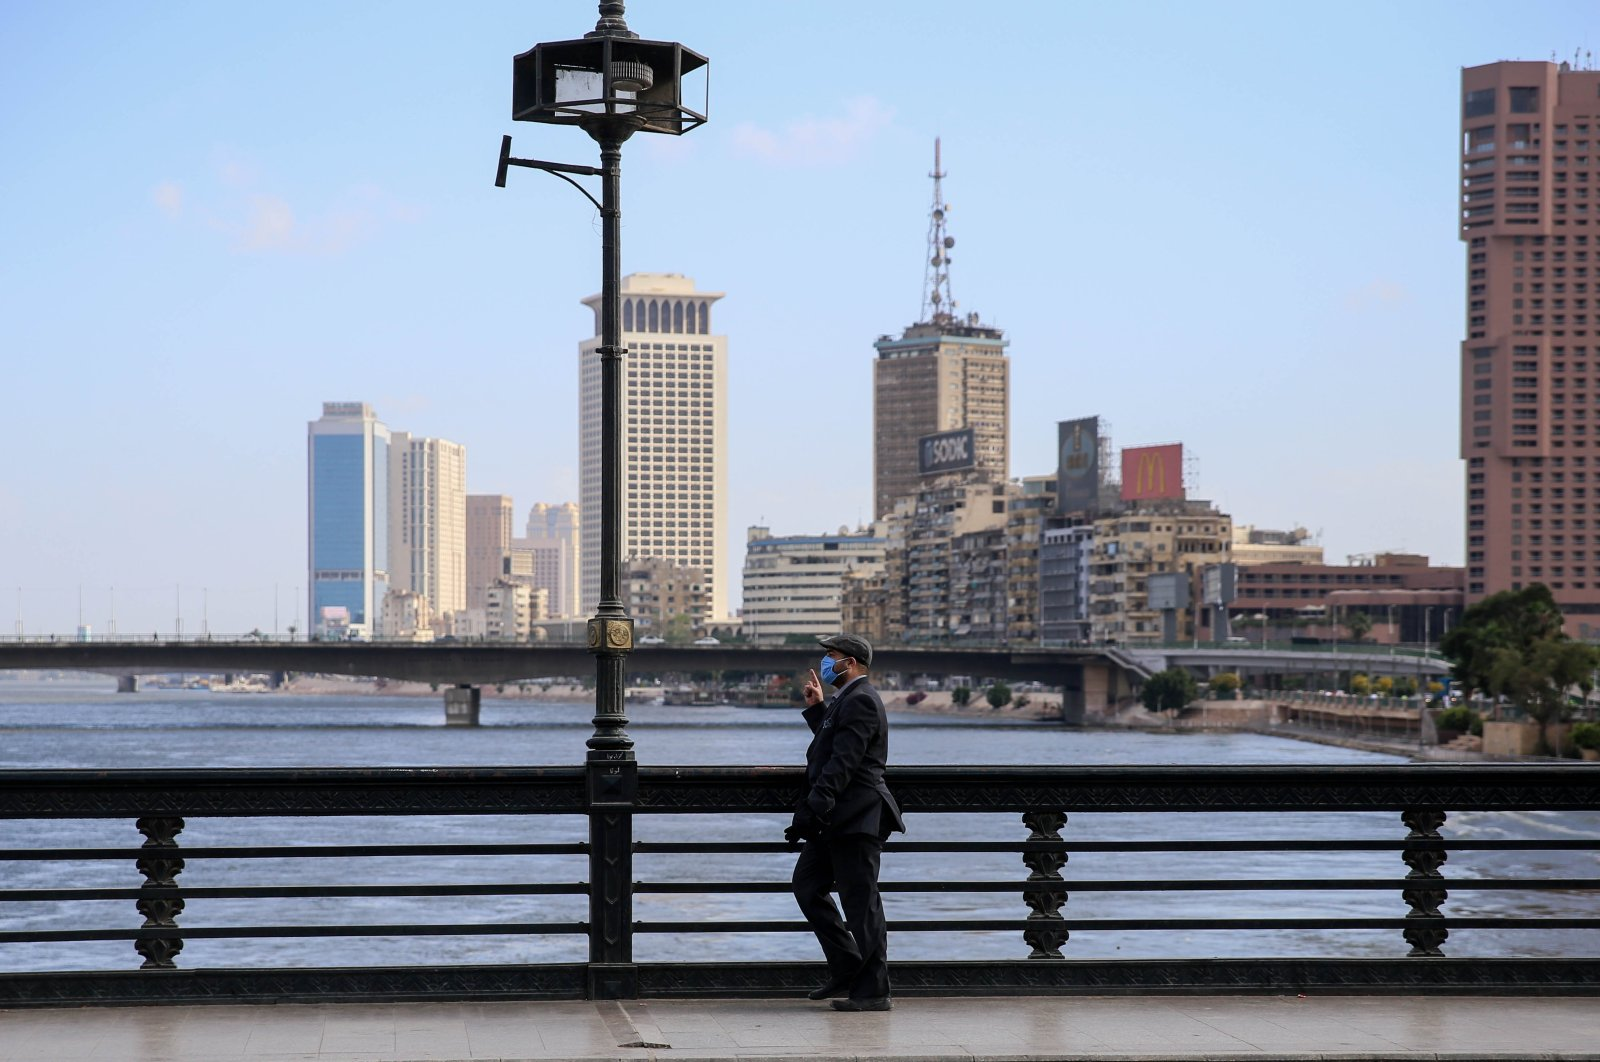 A mask-clad man walks along the Kasr el-Nil bridge connecting the island district of Zamalek to the city center of Cairo, May 24, 2020. (AFP Photo)